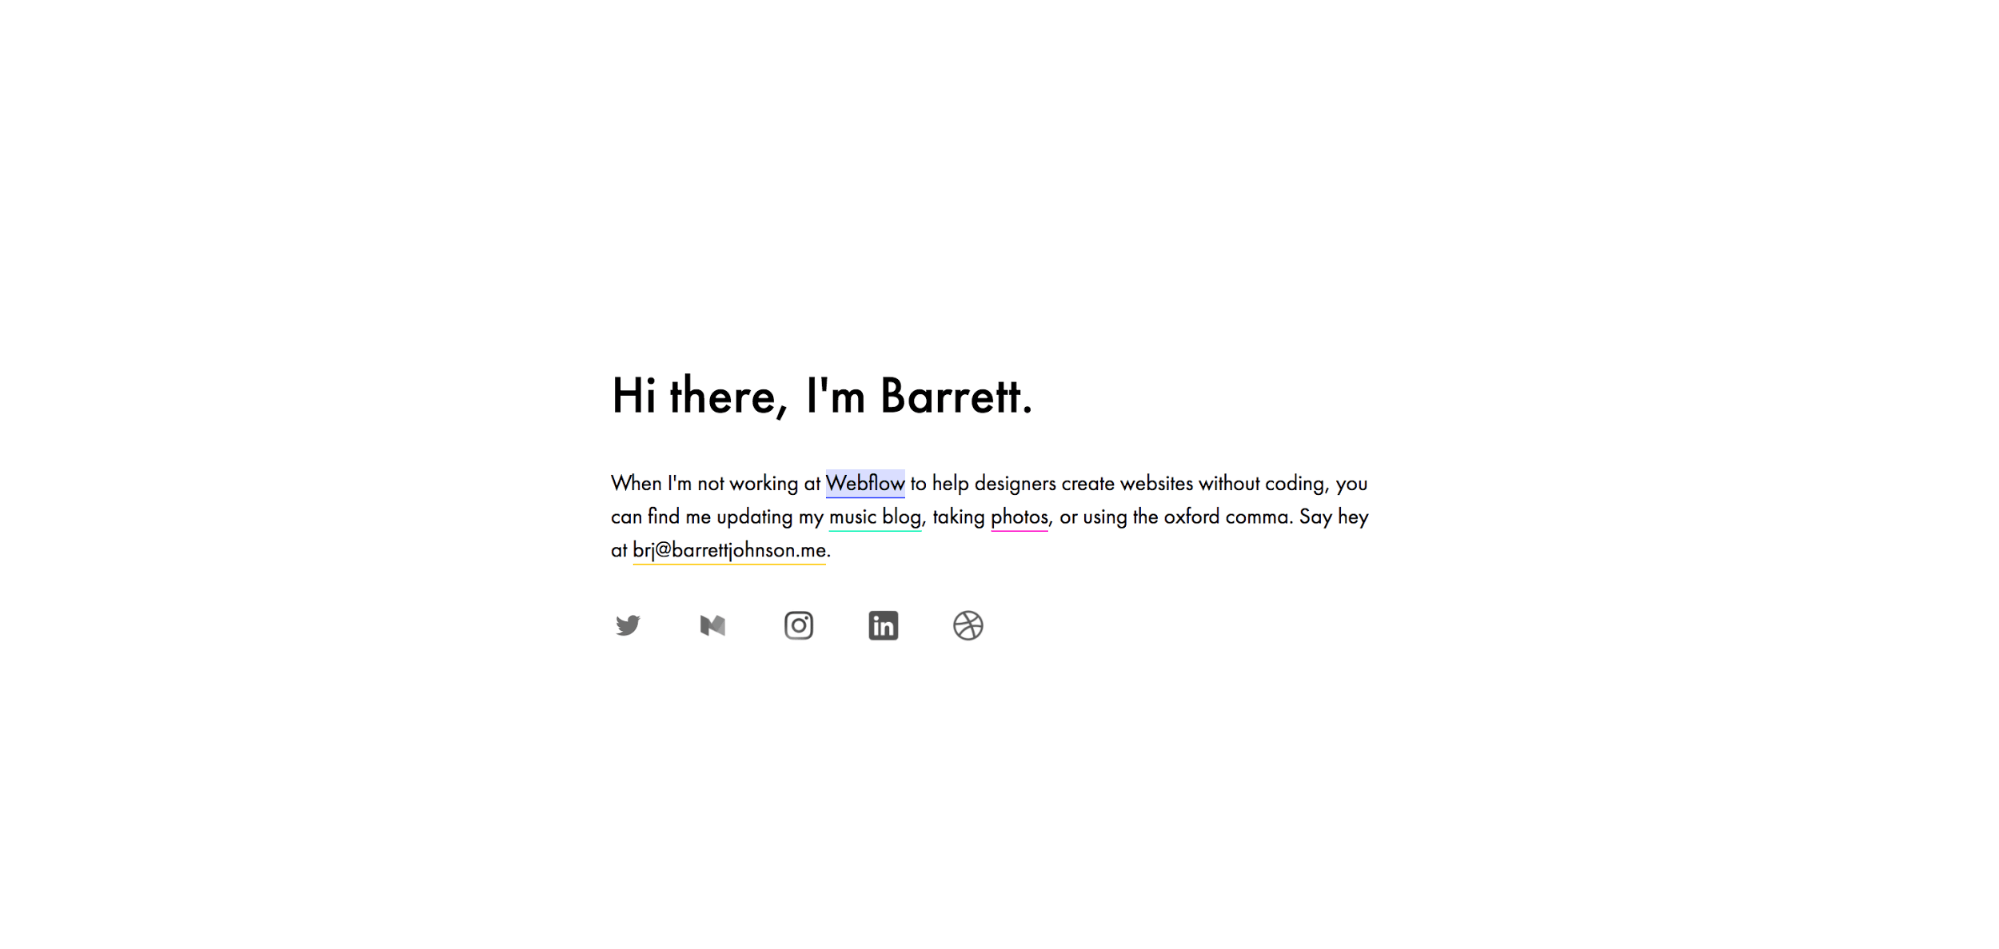 Barrett Johnson's portfolio website